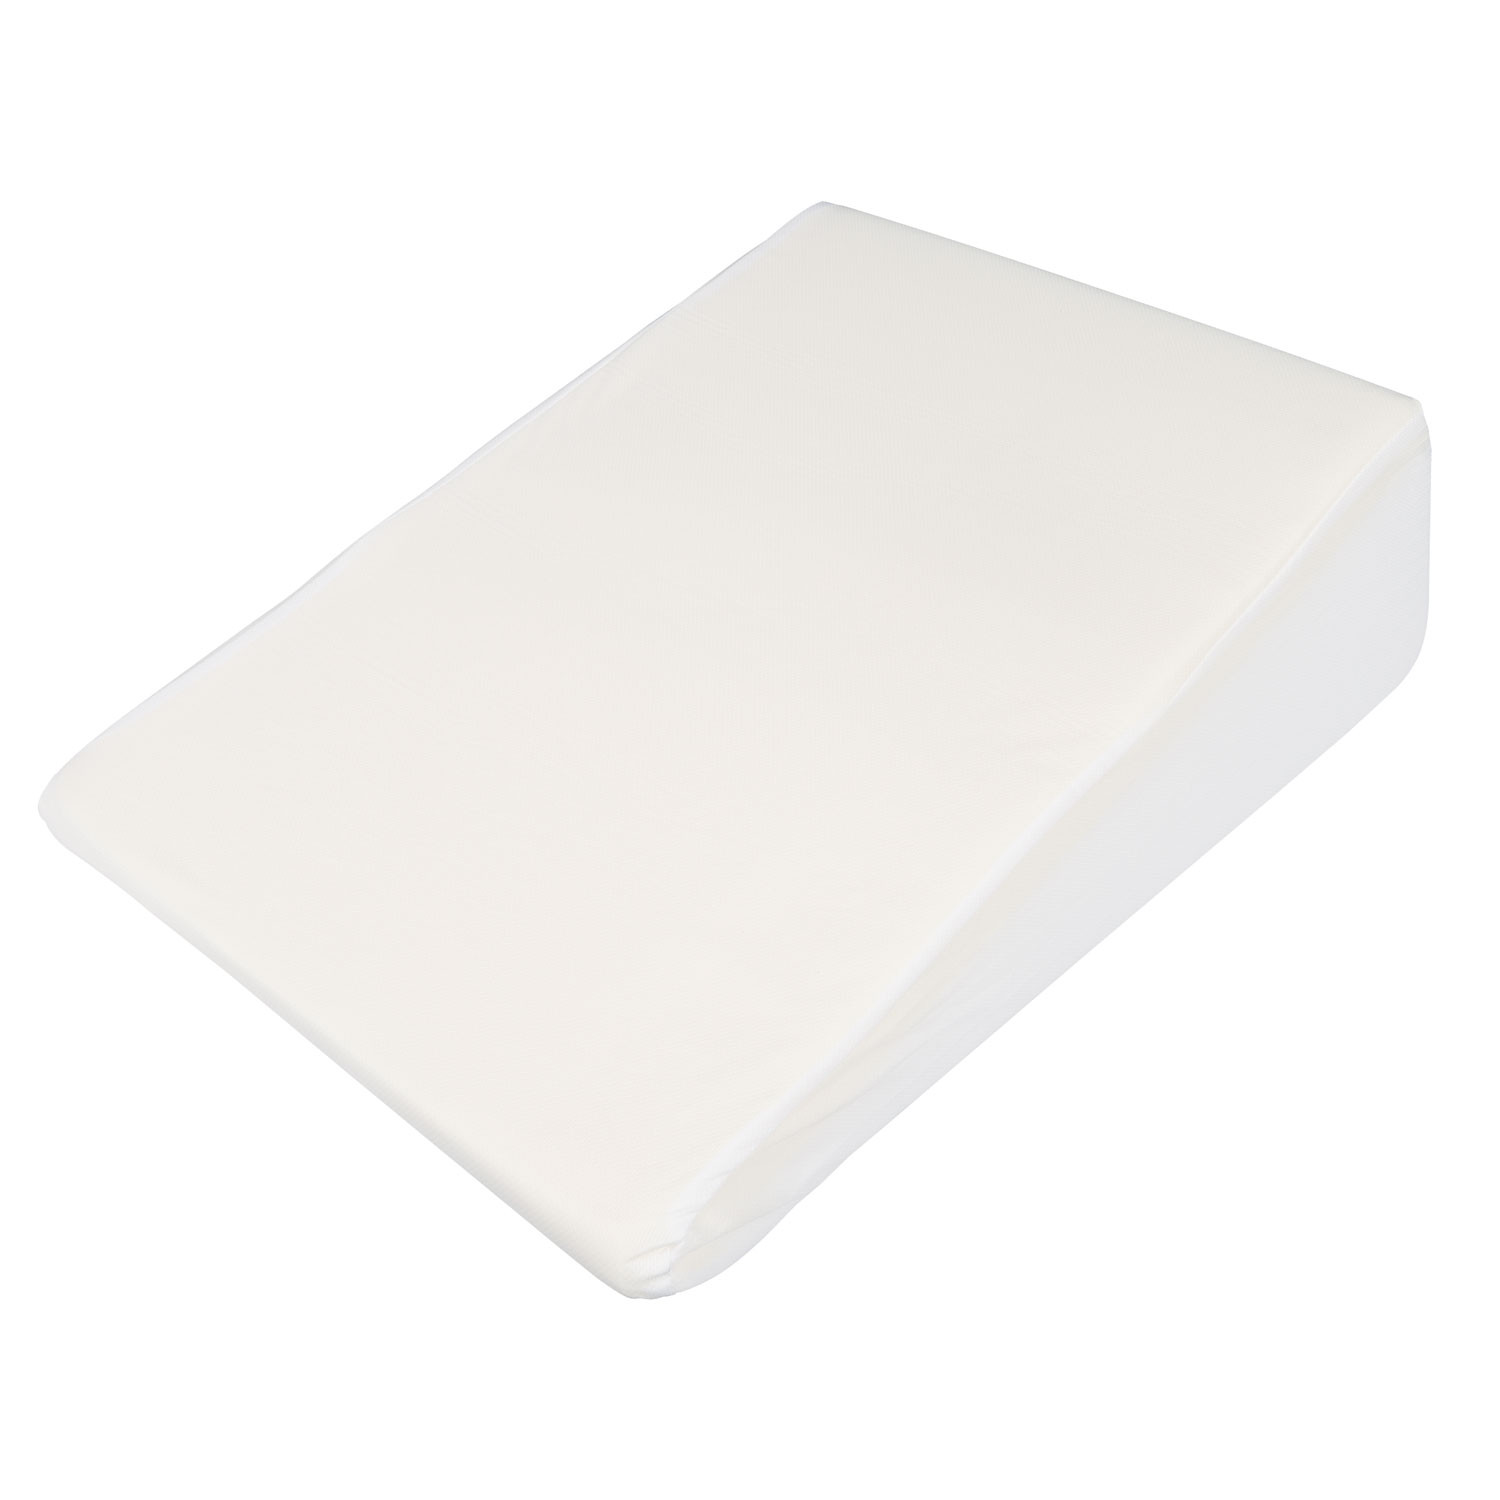 Support Plus Bed Wedge Pillow Memory Foam Triangle